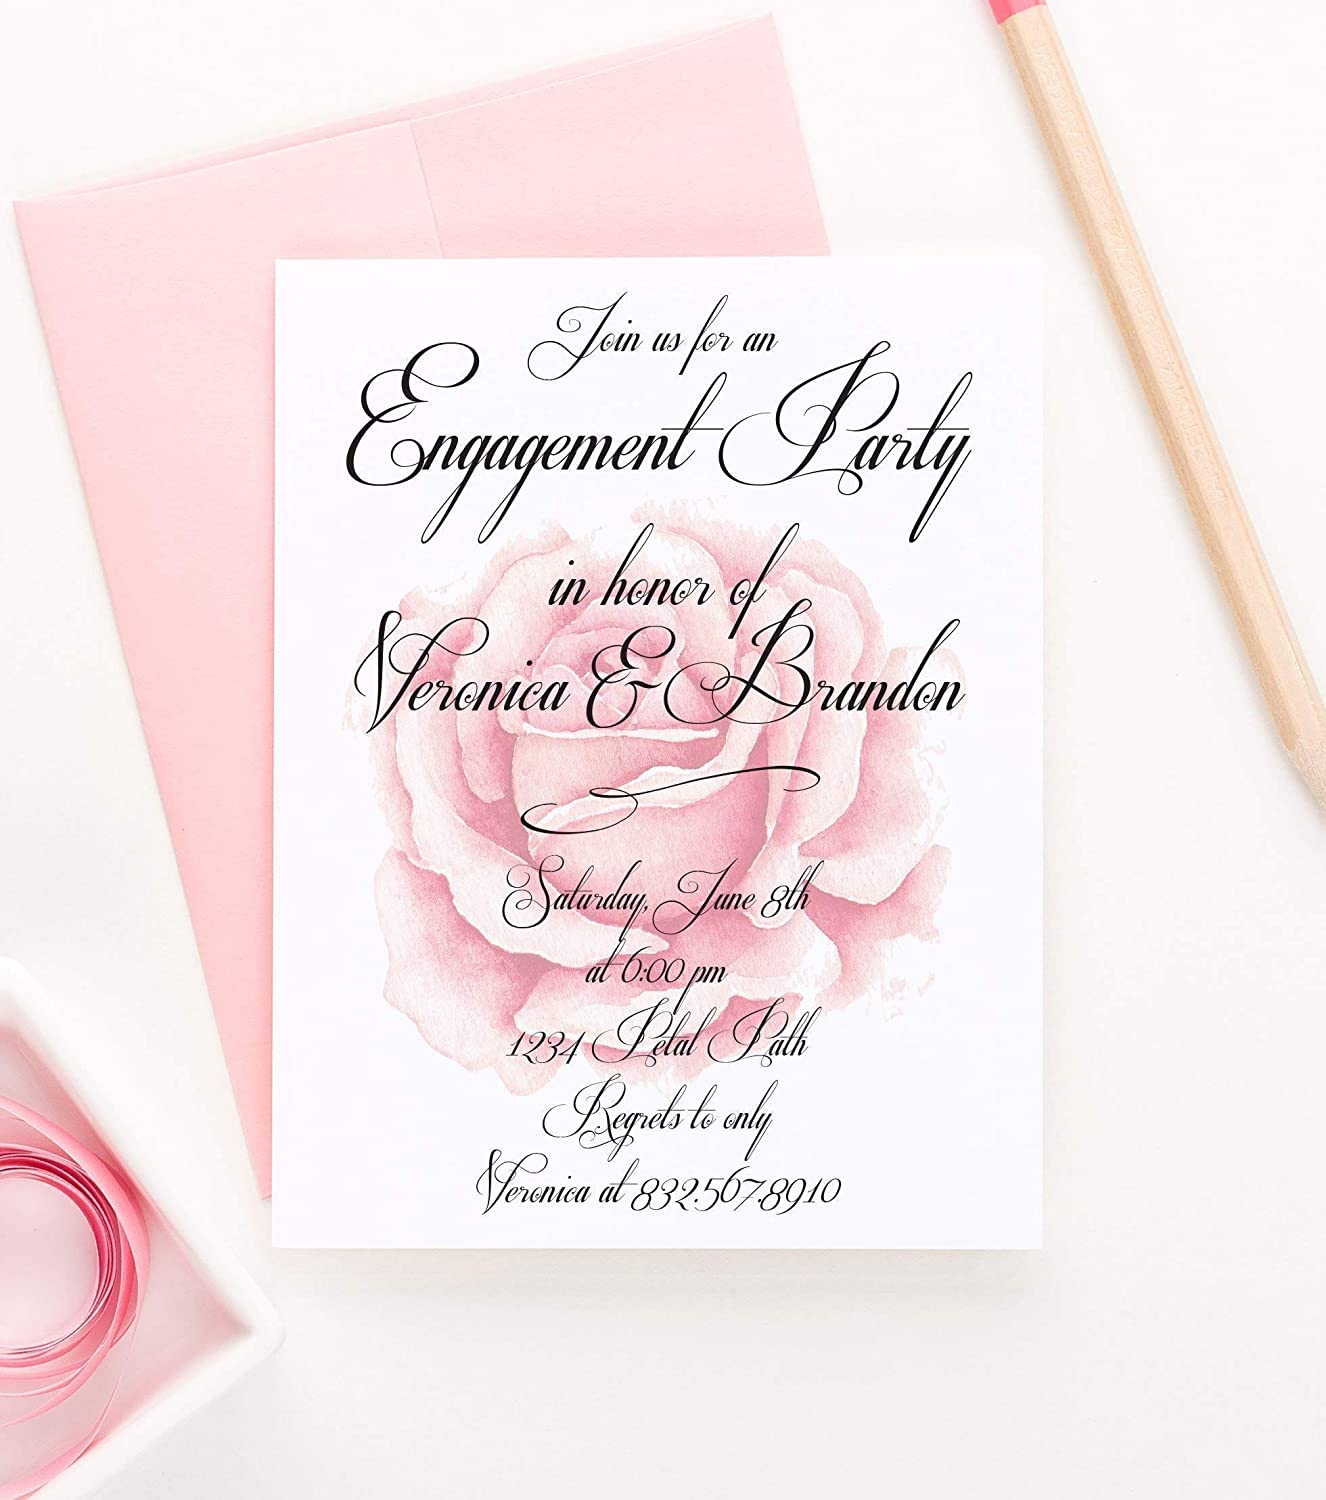 Rustic Floral Engagement Party Invitation Elegant Engagement Party Invitation Your choice of Quantity and Envelope Color